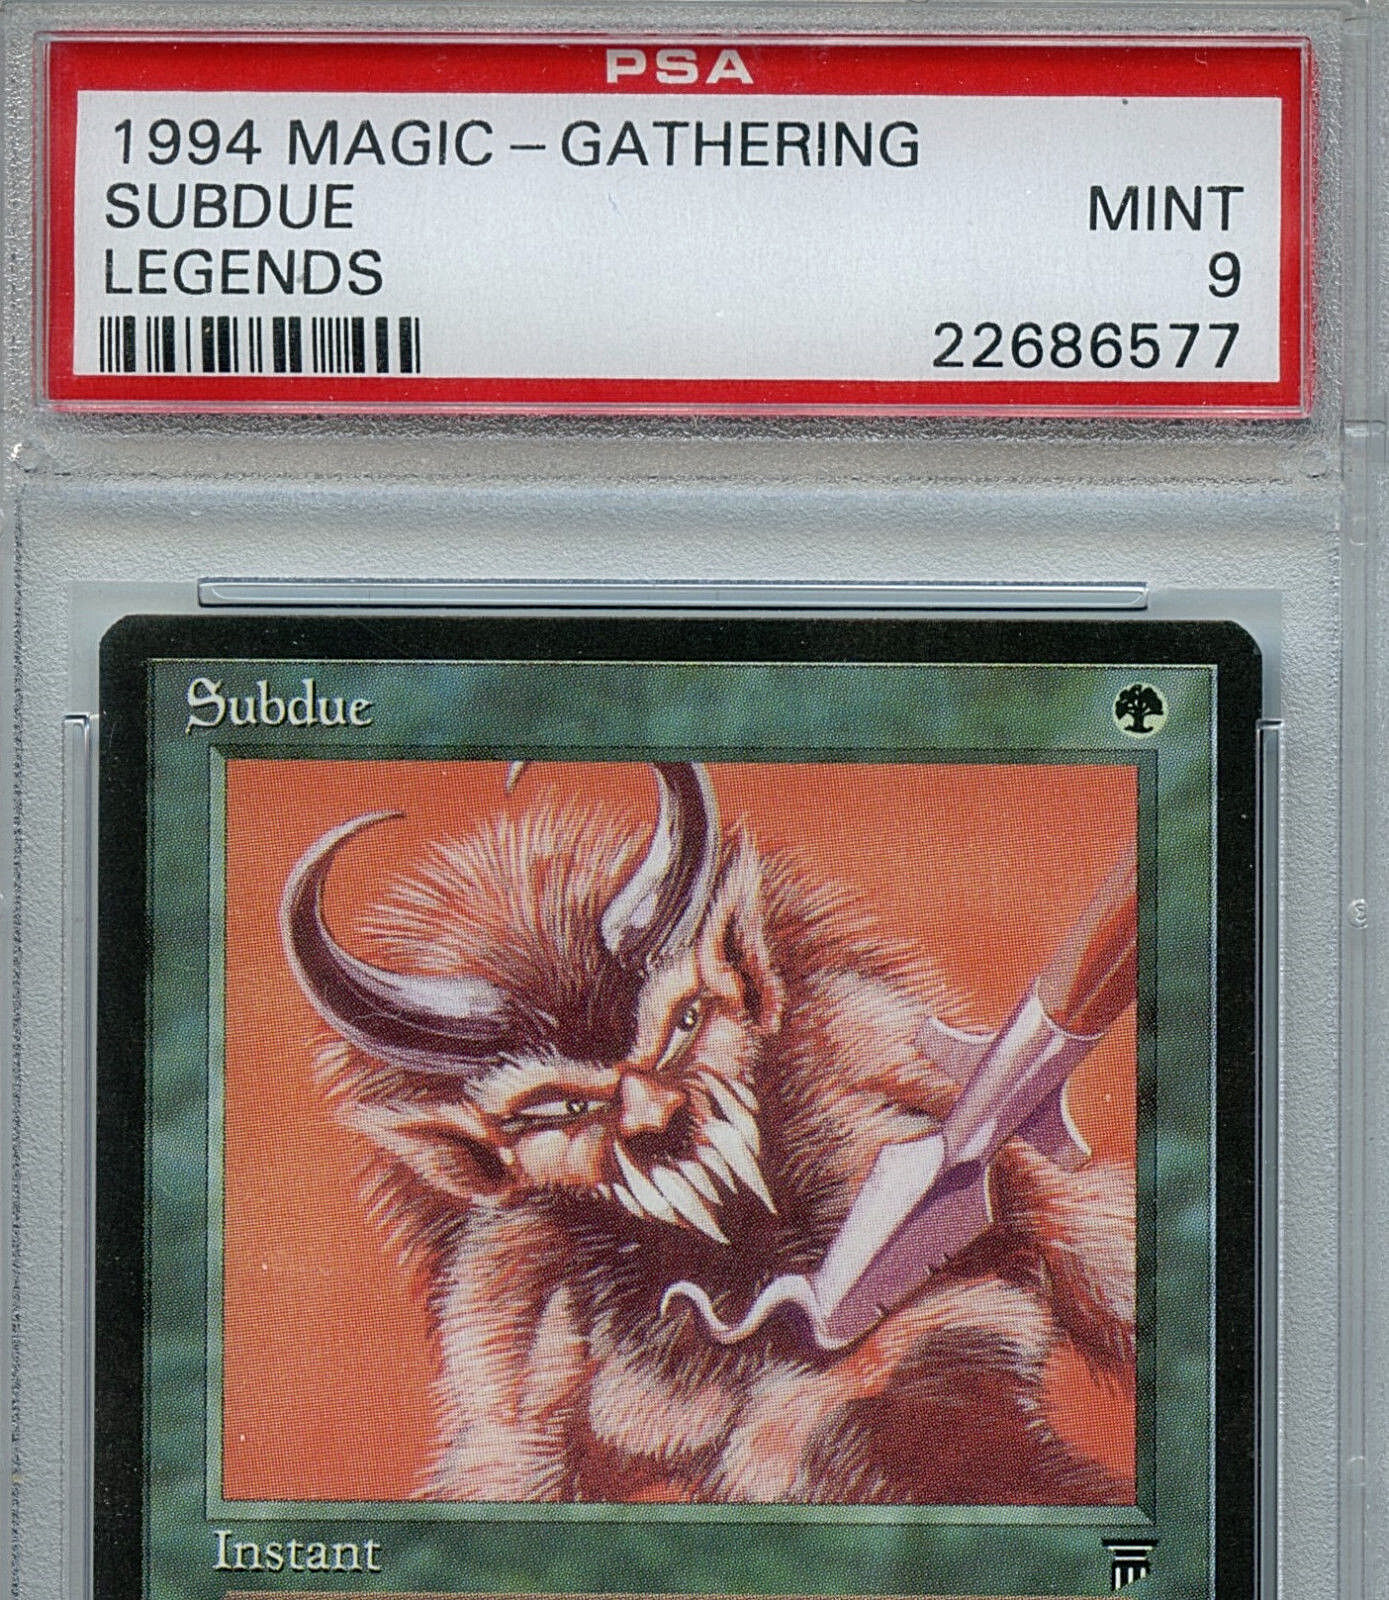 MTG Legends Subdue PSA 9.0 (9) Mint Mint Mint card Magic the Gathering 6577 1ed07a